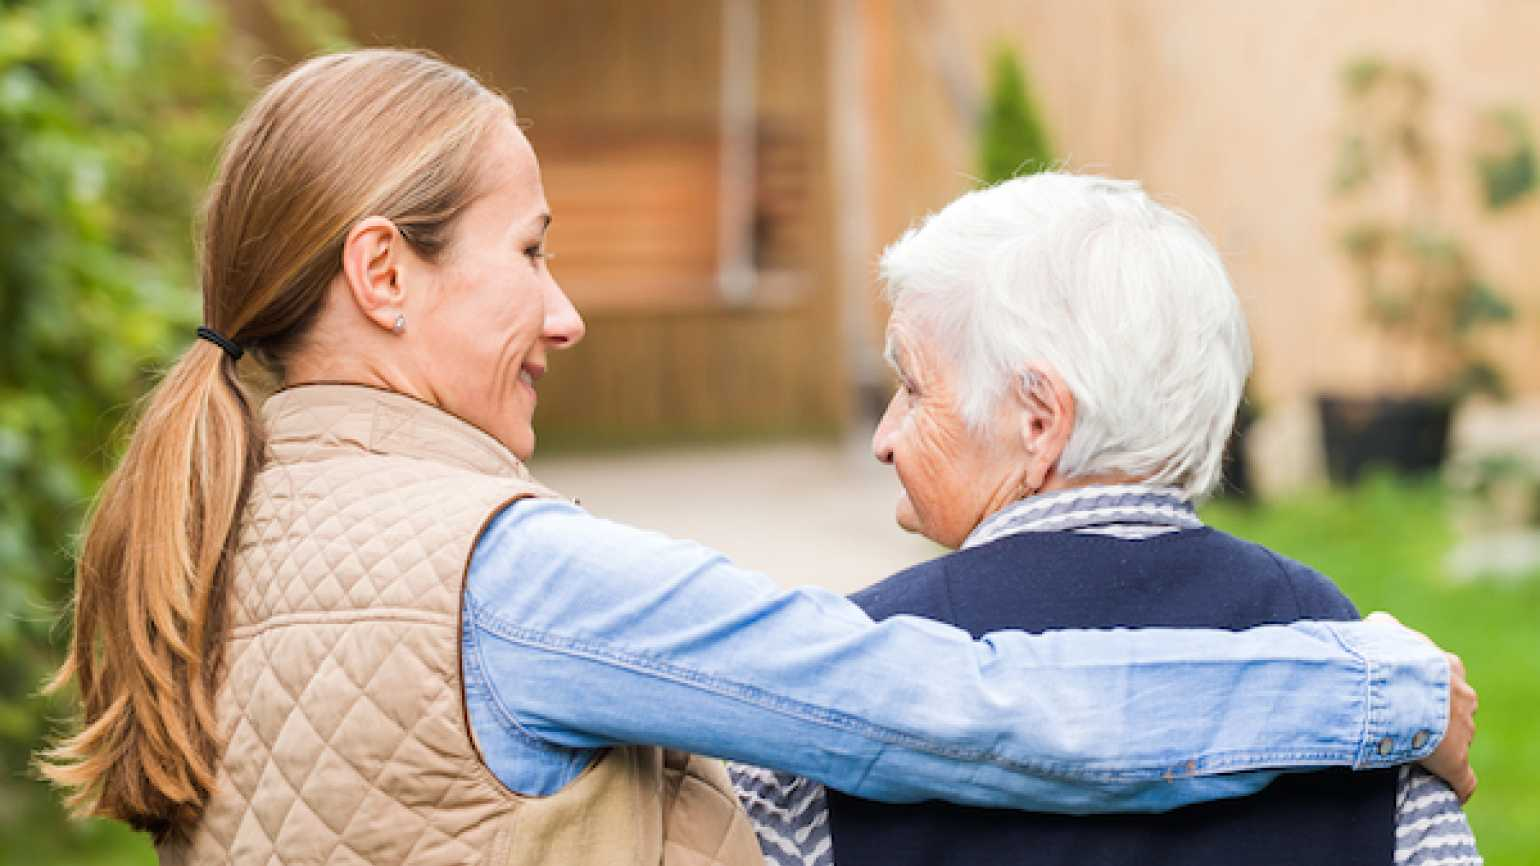 Advice and comfort for stressed out caregivers.